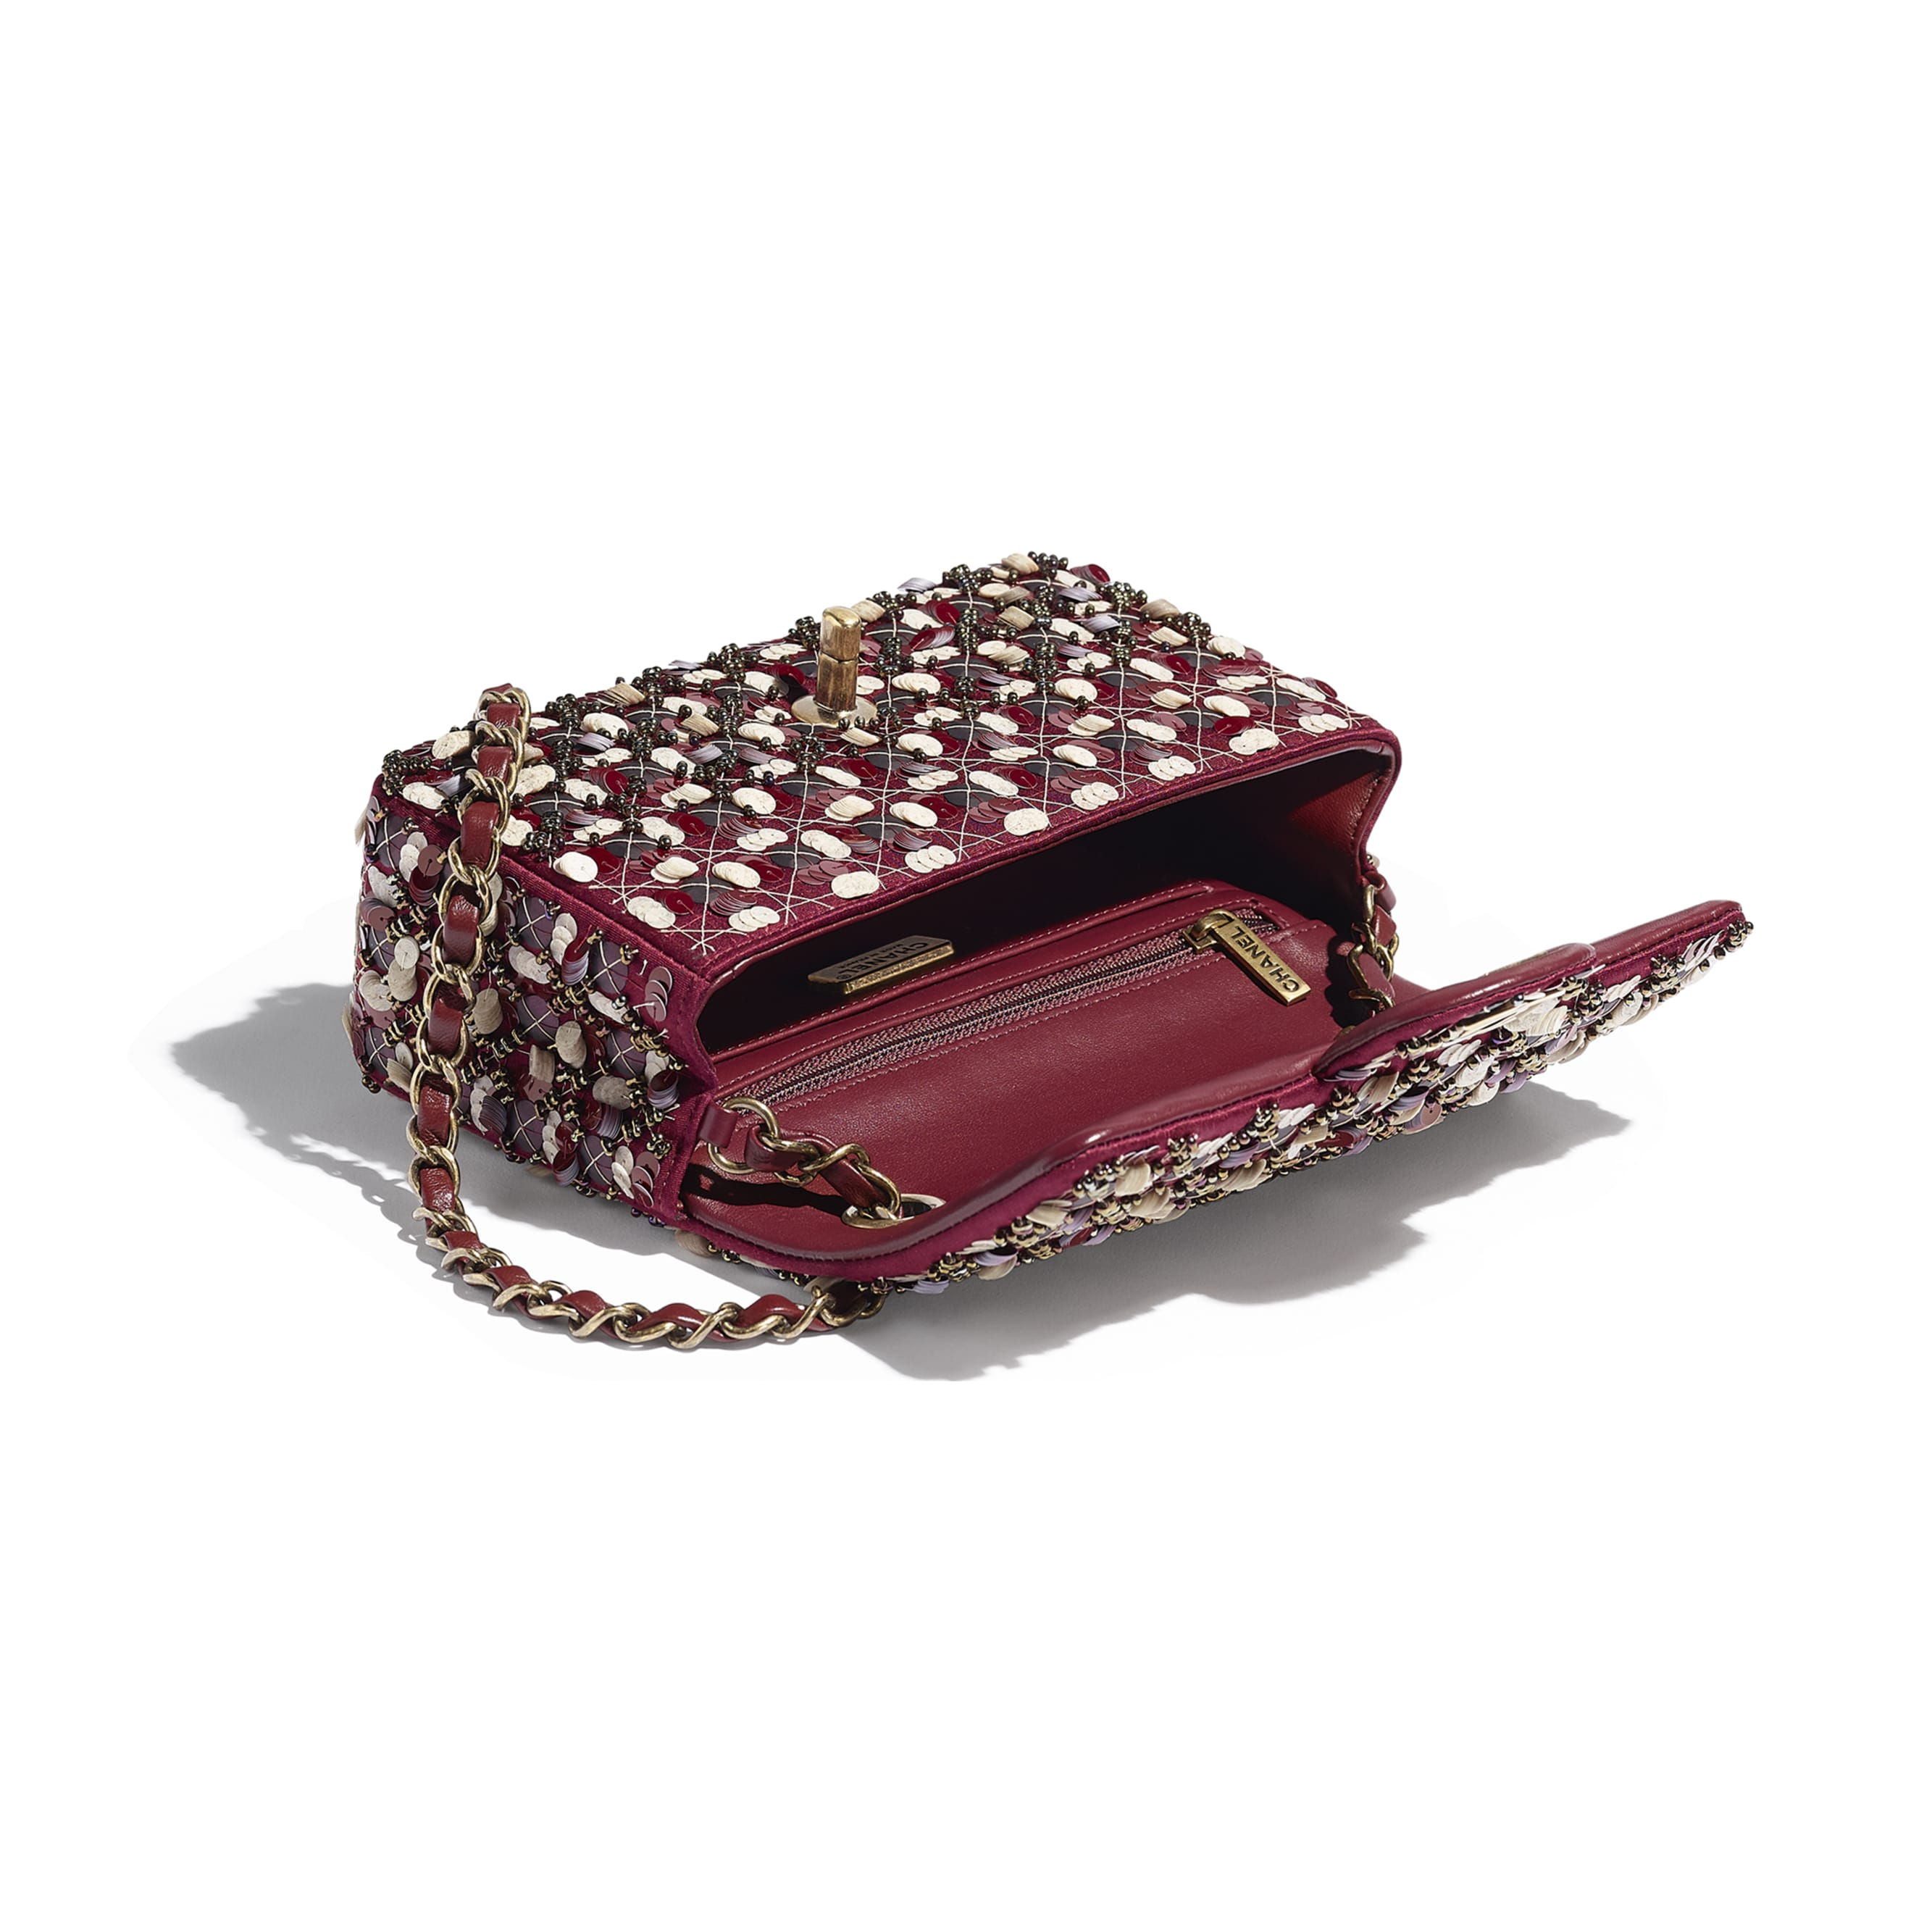 Mini Flap Bag - Burgundy, Pink & White - Satin, Sequins, Glass Pearls & Gold-Tone Metal - CHANEL - Other view - see standard sized version